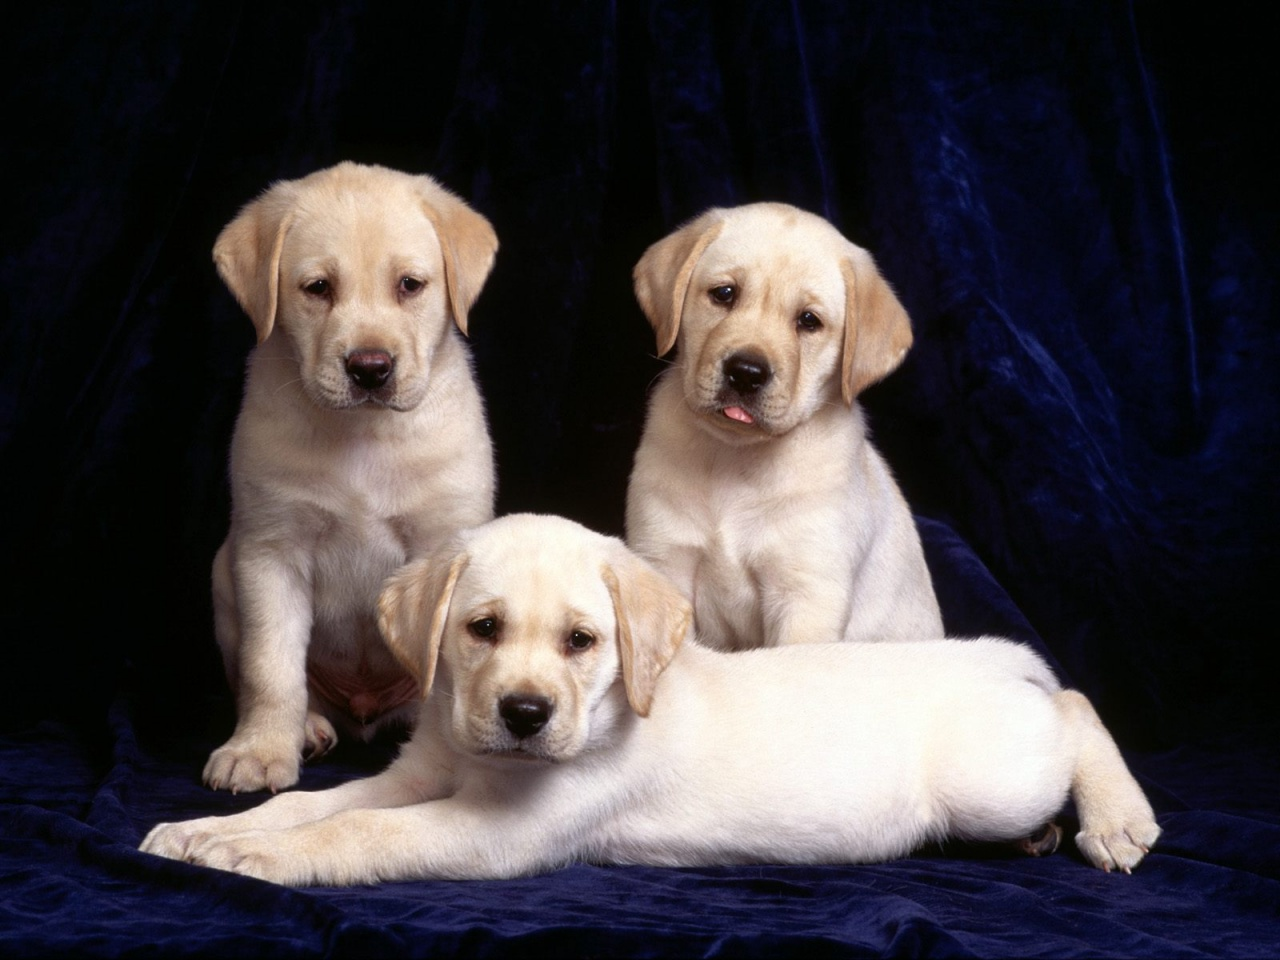 http://1.bp.blogspot.com/-8XPuOckA33c/T5x0mg65fYI/AAAAAAAAAU4/2LfPF3PpQjE/s1600/cute_labrador_puppies_pc_wallpaper-1280x960.jpg